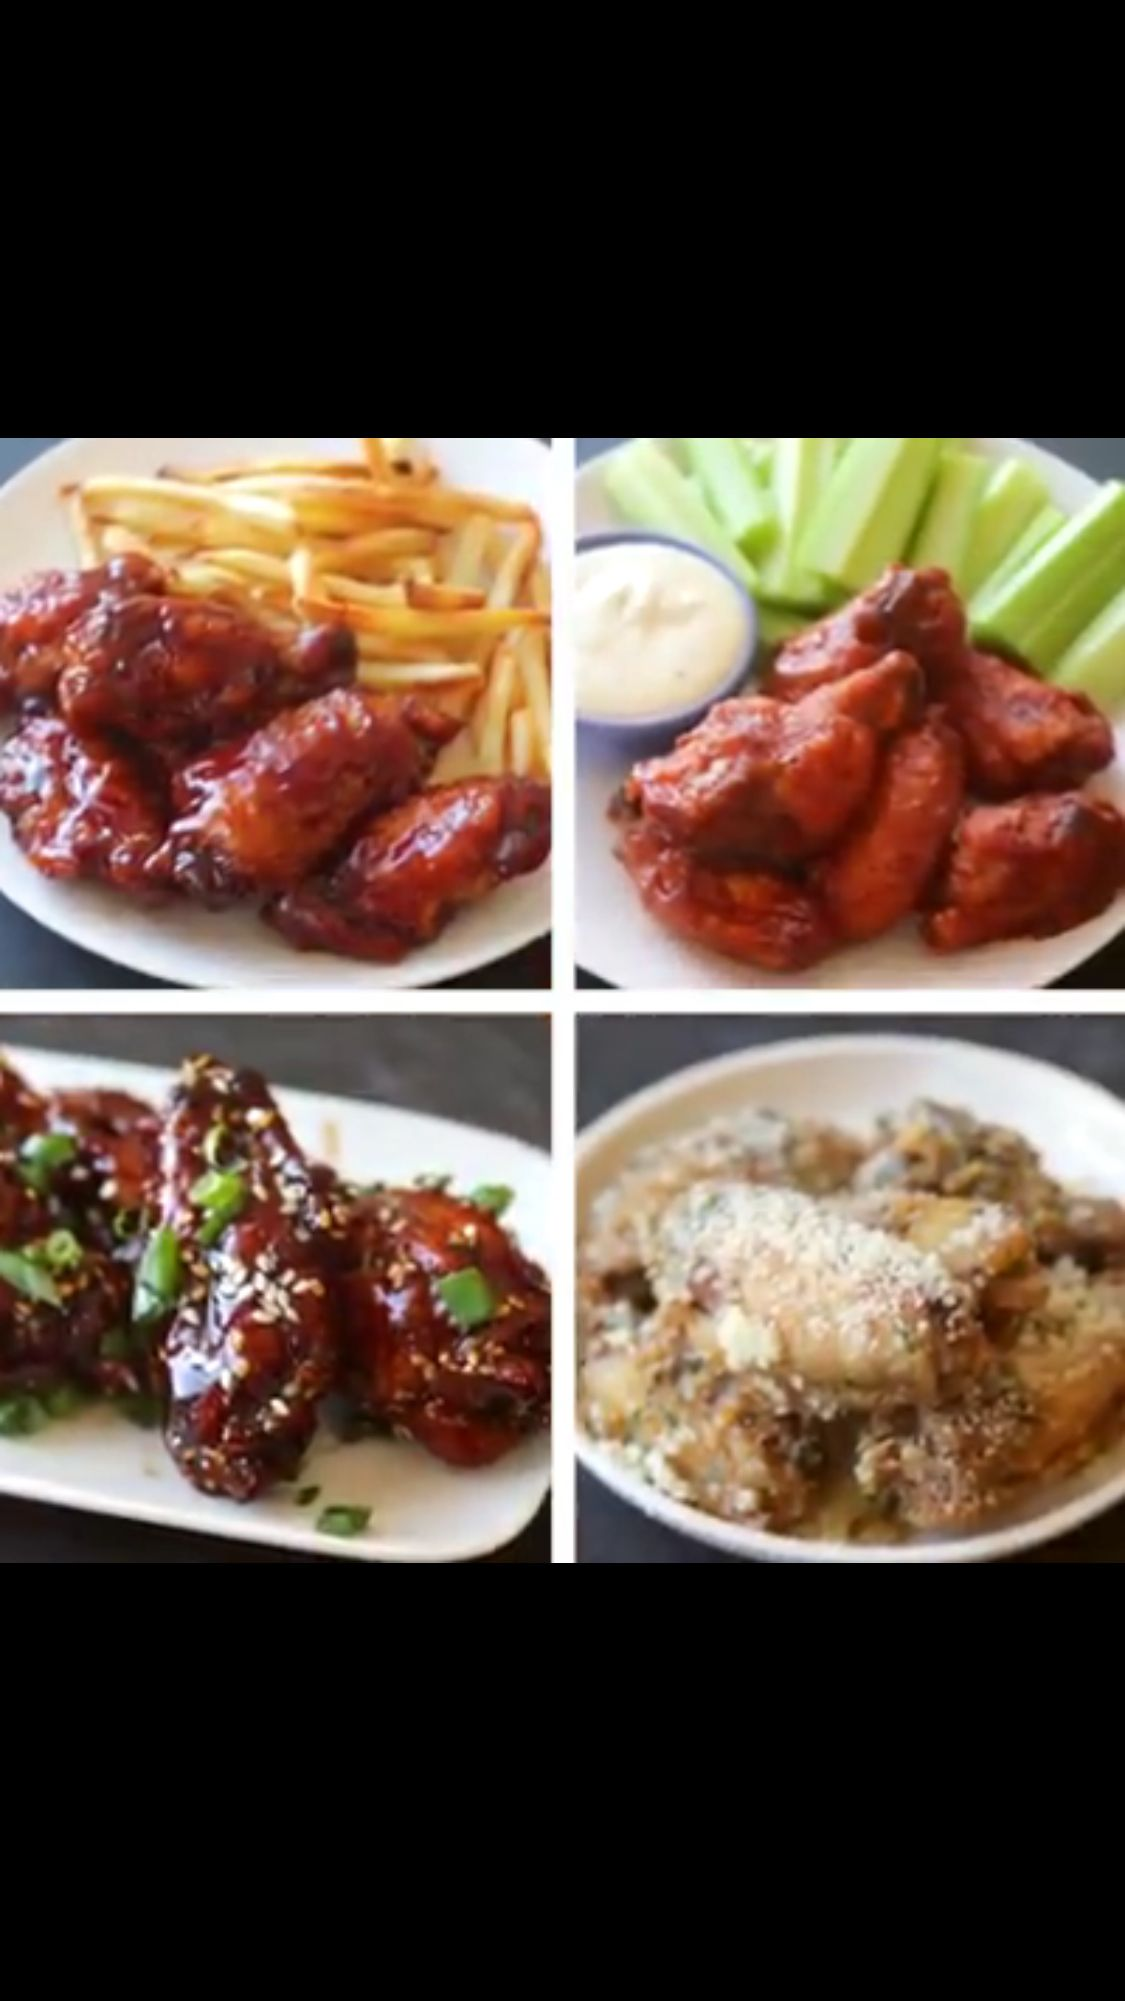 Chicken wings 4 ways eventsholidaysparties pinterest chicken wings 4 ways recipe in a medium bowl stir together the flour salt and pepper toss the chicken wings in the flour mixture coating them evenly forumfinder Image collections